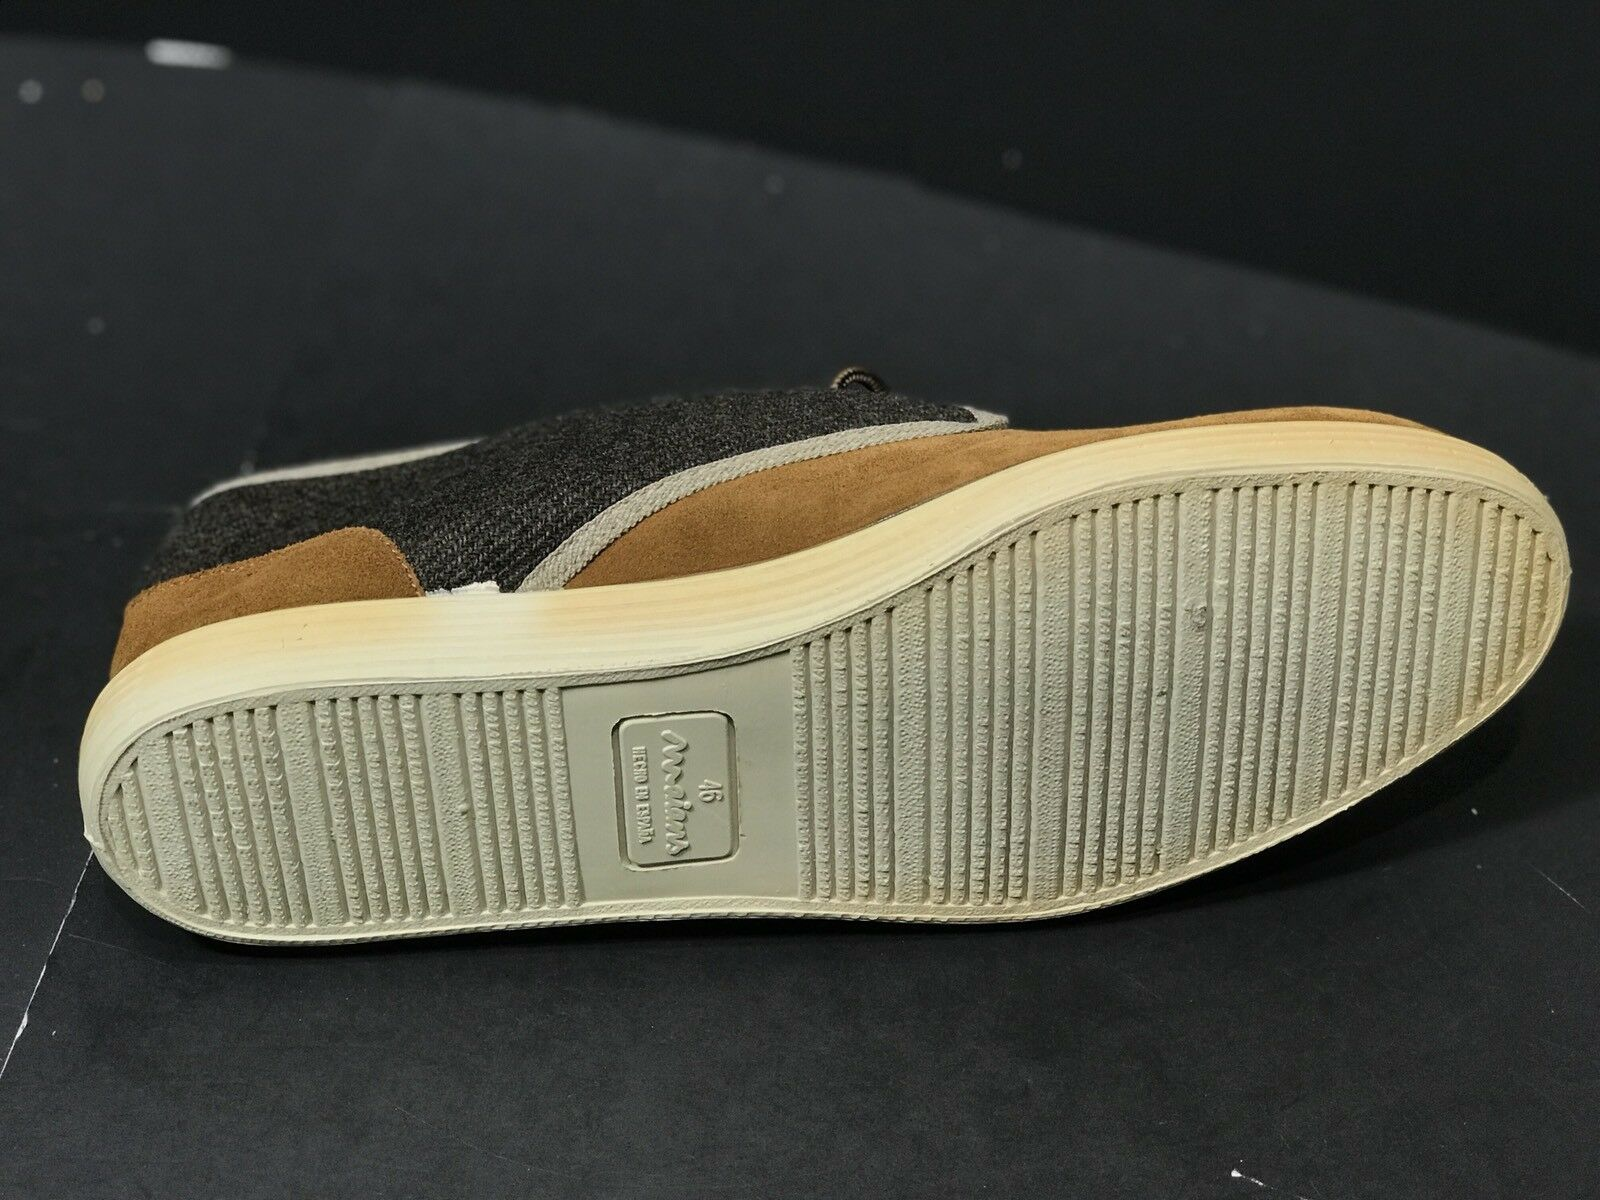 9ec1fd64a4a6 ... NEW Maians Maians Maians Domingo Mens Suede Sneakers Brown Size 1US  11.5 MADE IN SPAIN